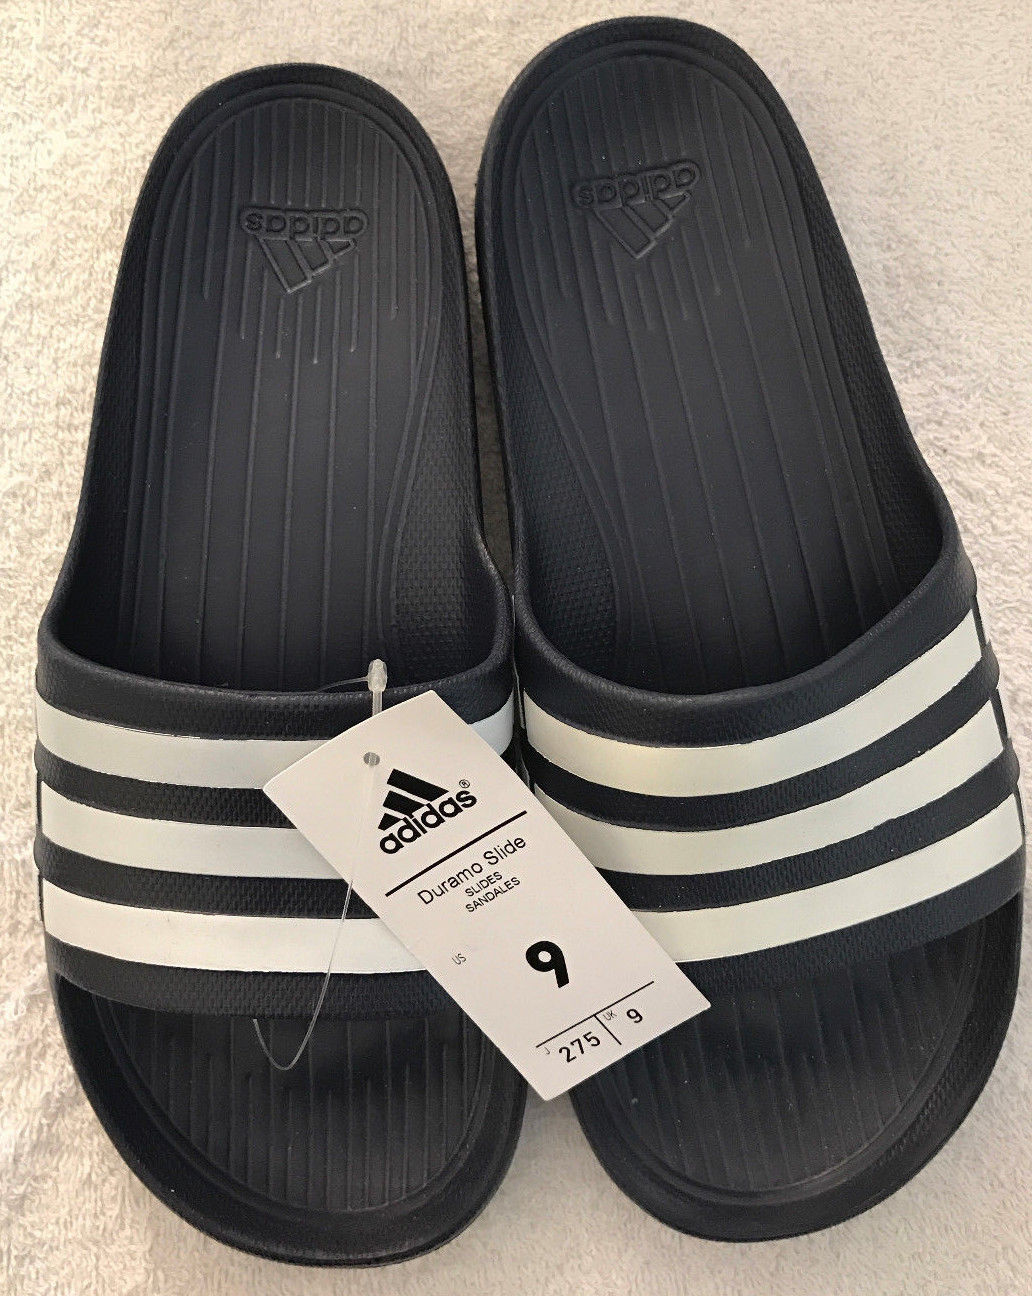 ee6493319 Adidas Duramo G15892 Mens Navy White Slides and 44 similar items. S l1600